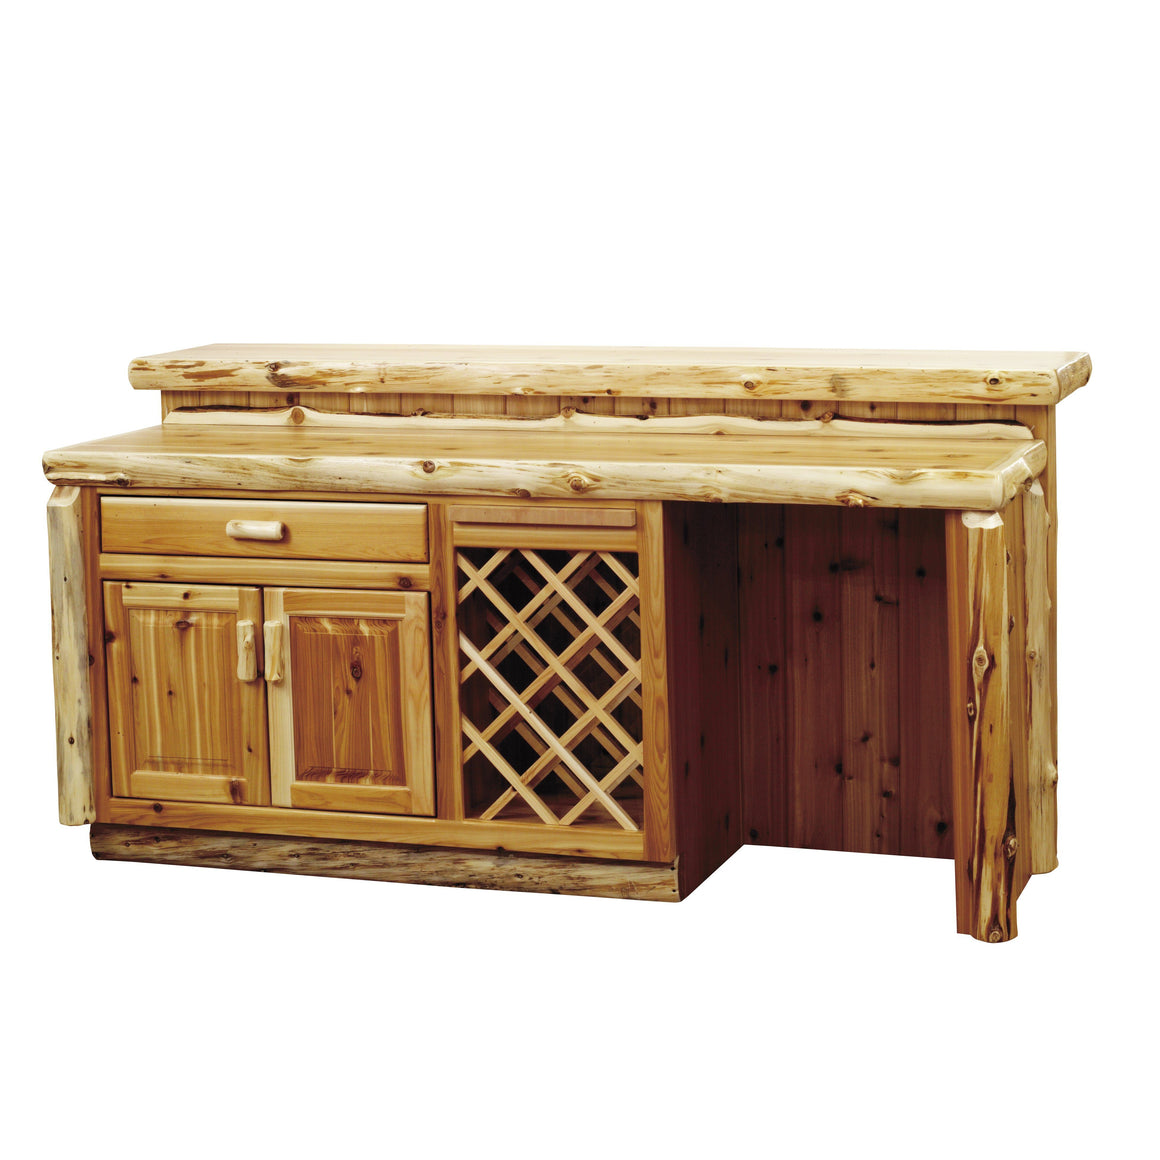 Natural Cedar 7 Foot Log Home Bar with Standard Cabinet Bar Fireside Lodge Liquid Glass Finish Refrigerator Opening on Right